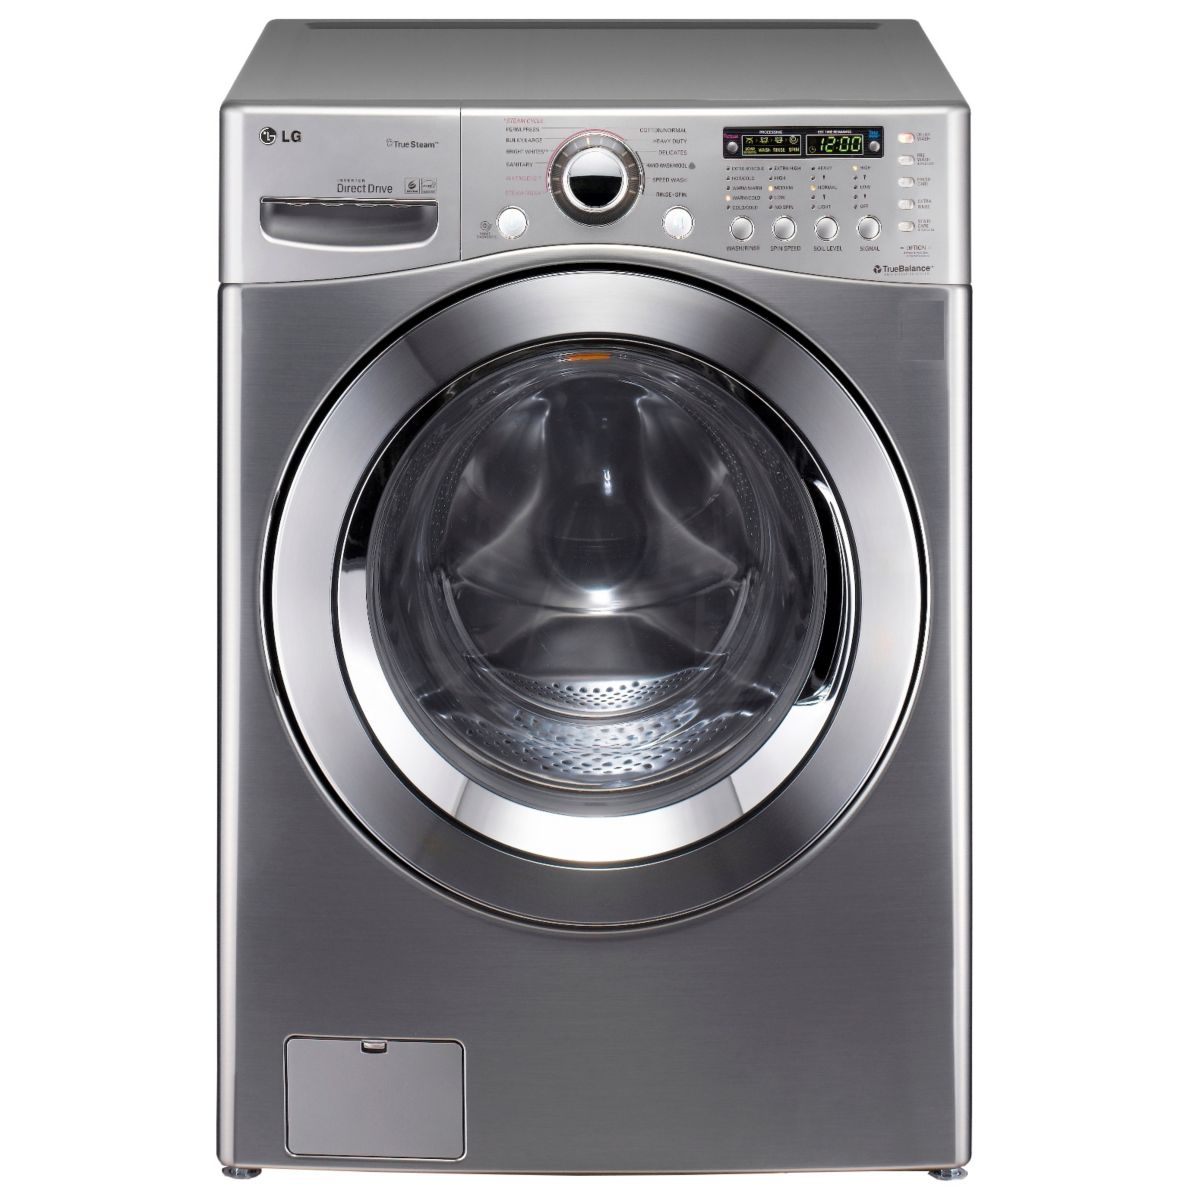 lg f52596ixs lave linge frontal 6 motion direct drive 15 kg comparer avec. Black Bedroom Furniture Sets. Home Design Ideas